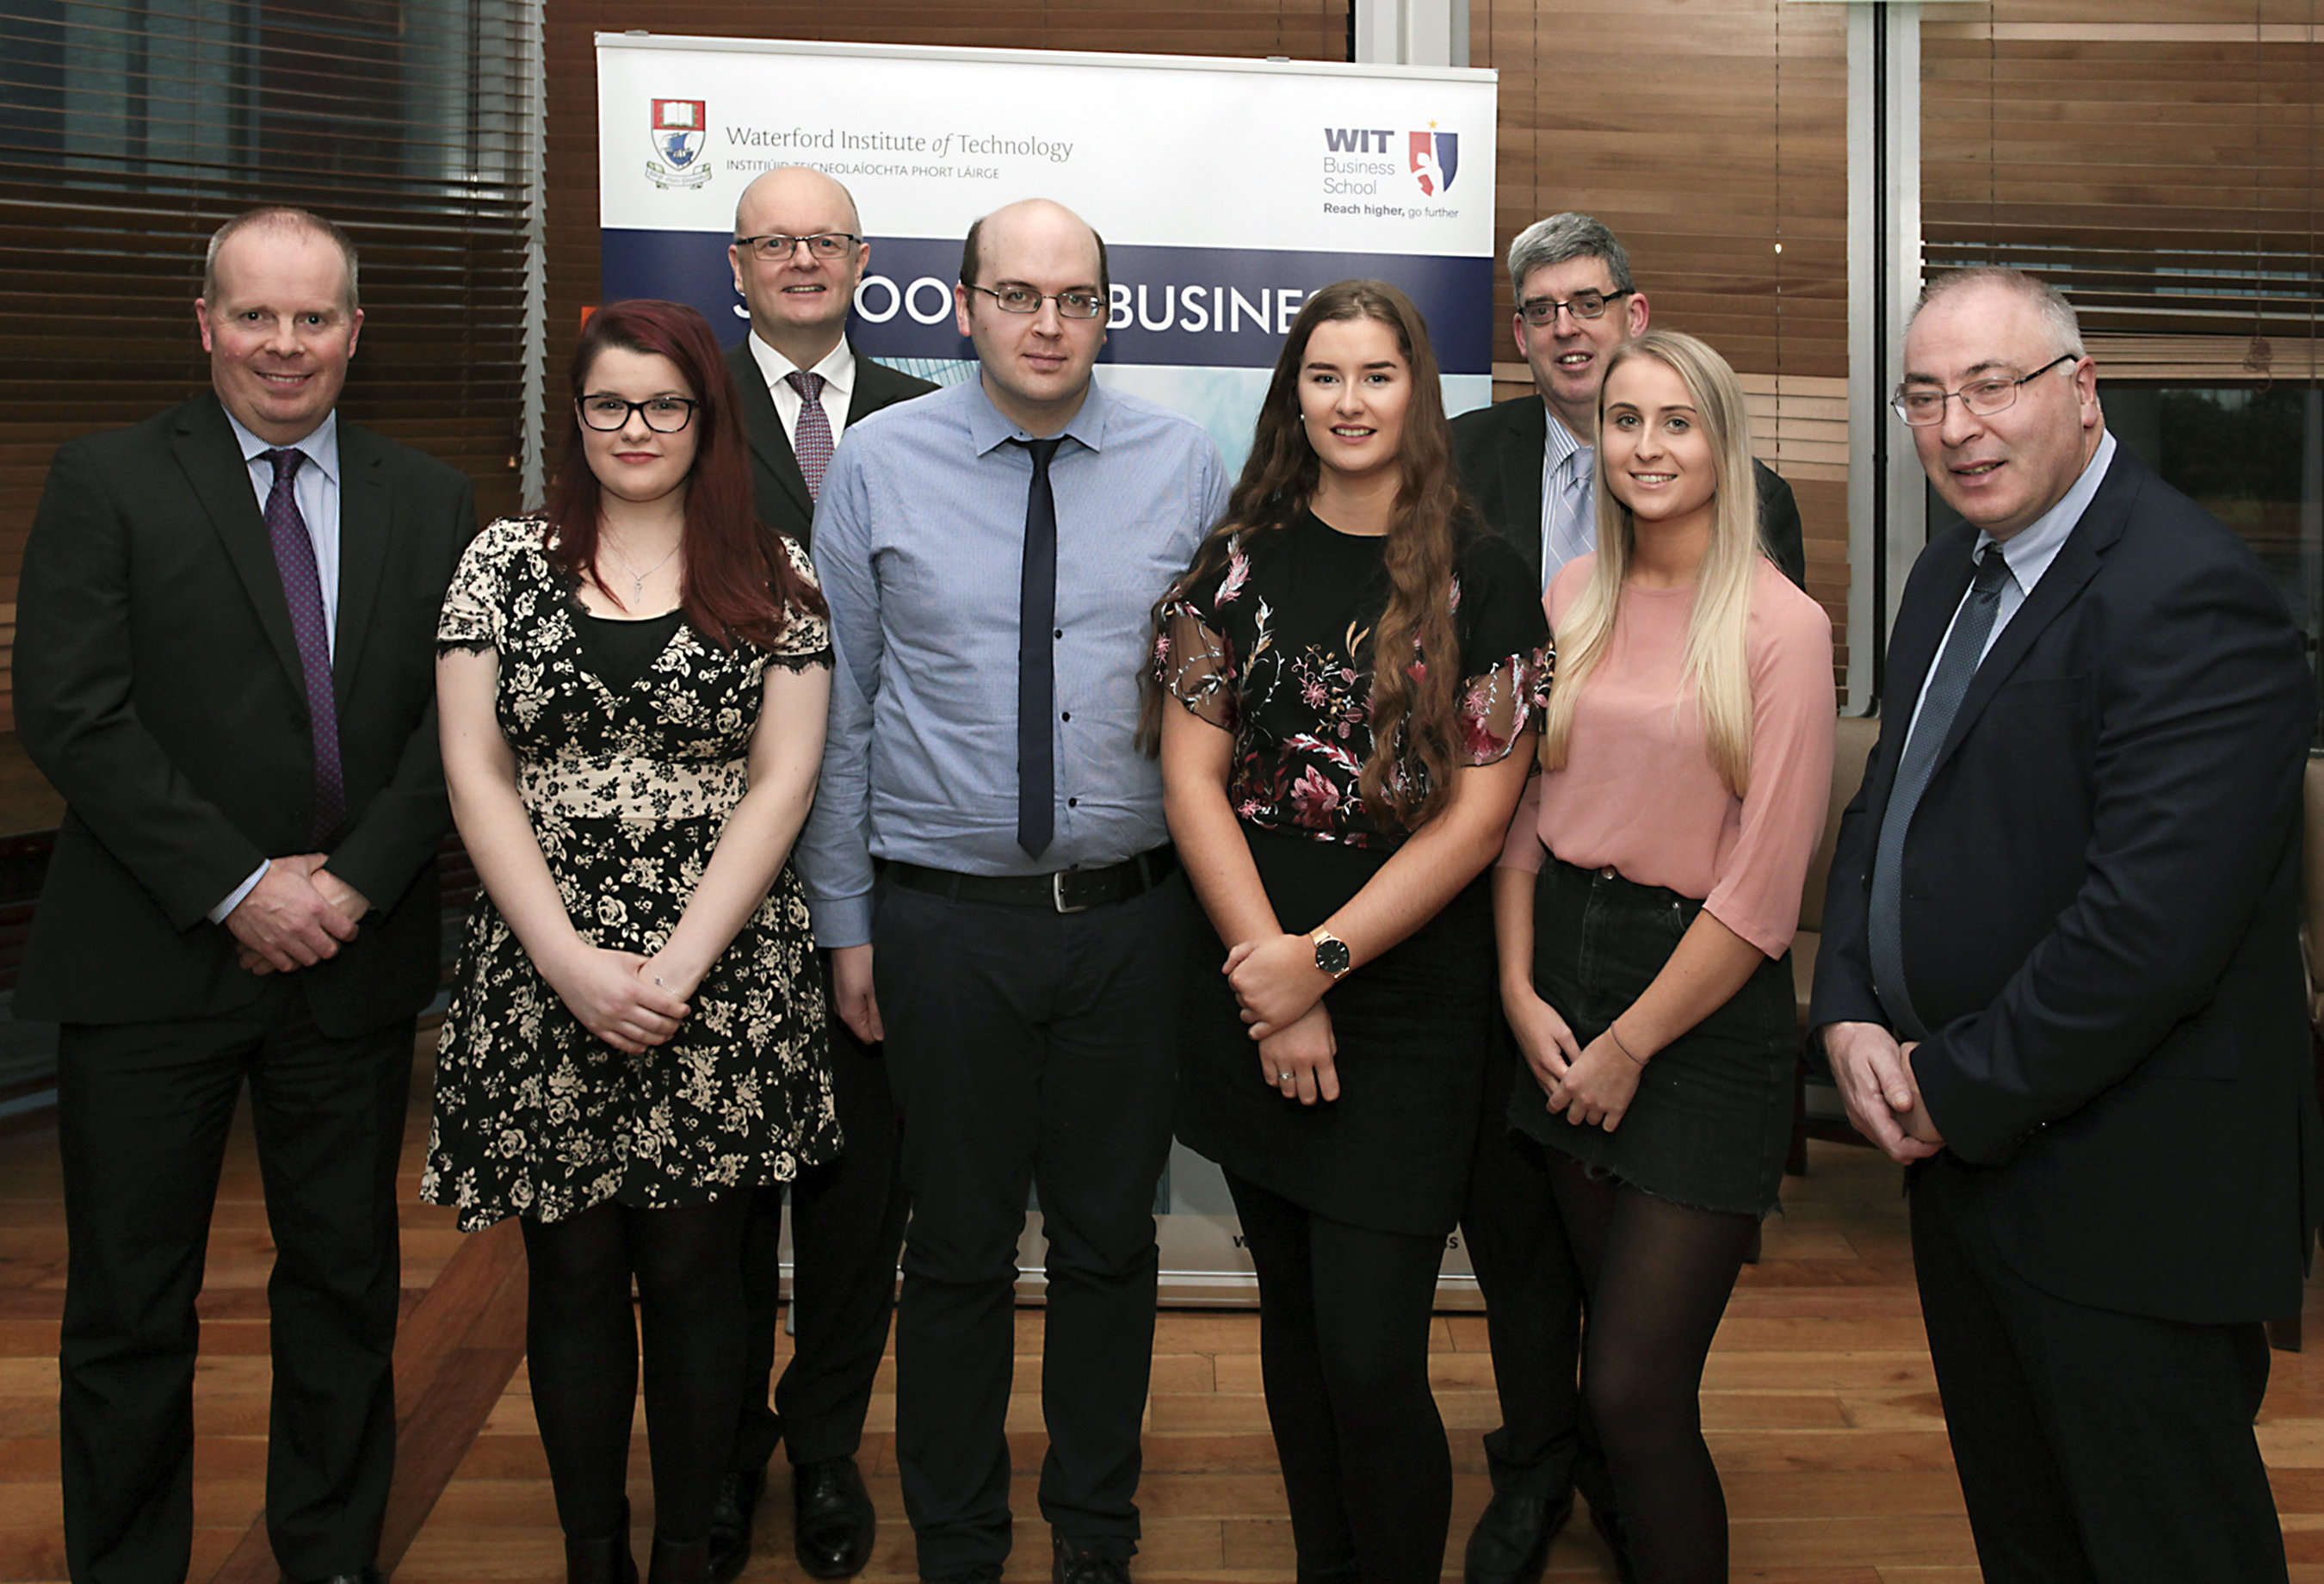 Pictured: Paul Treacy, Programme Leader; Heather Duff White, PWC 2018 Student Bursary Winner; Dr Thomas O'Toole, Head of School of Business; Conor Duff, Merit Award winner; Sarah Grace, Merit Award winner; Ger Long, HOD Accounting & Economics; Oonagh Bowe, Merit Award winner ; Martin Freyne, Regional Manager PriceWaterhouseCoopers